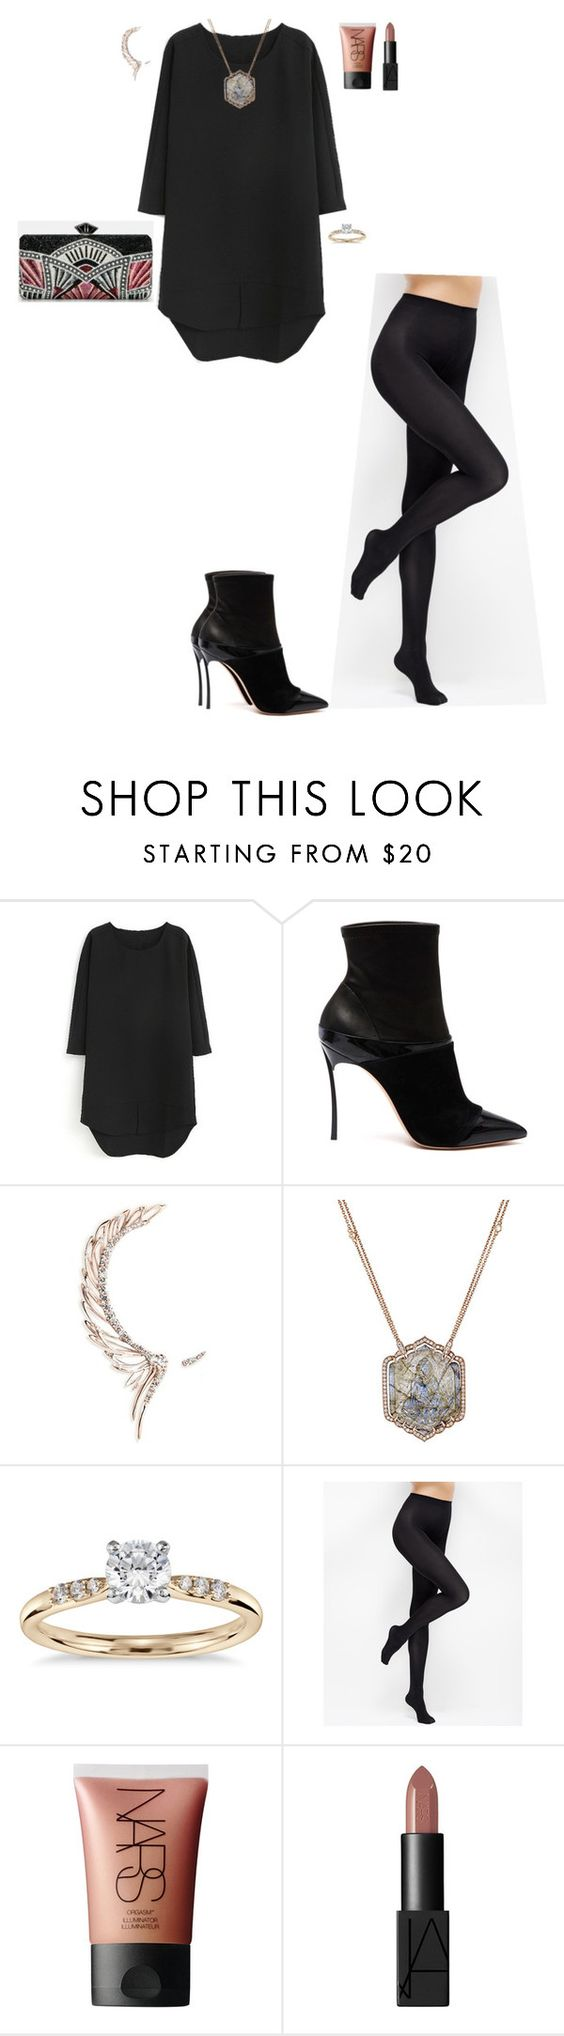 """""""SPECIAL DINNER"""" by stylev ❤ liked on Polyvore featuring Casadei, Cristina Ortiz, Sara Weinstock, Blue Nile, Judith Leiber, Ann Taylor and NARS Cosmetics"""